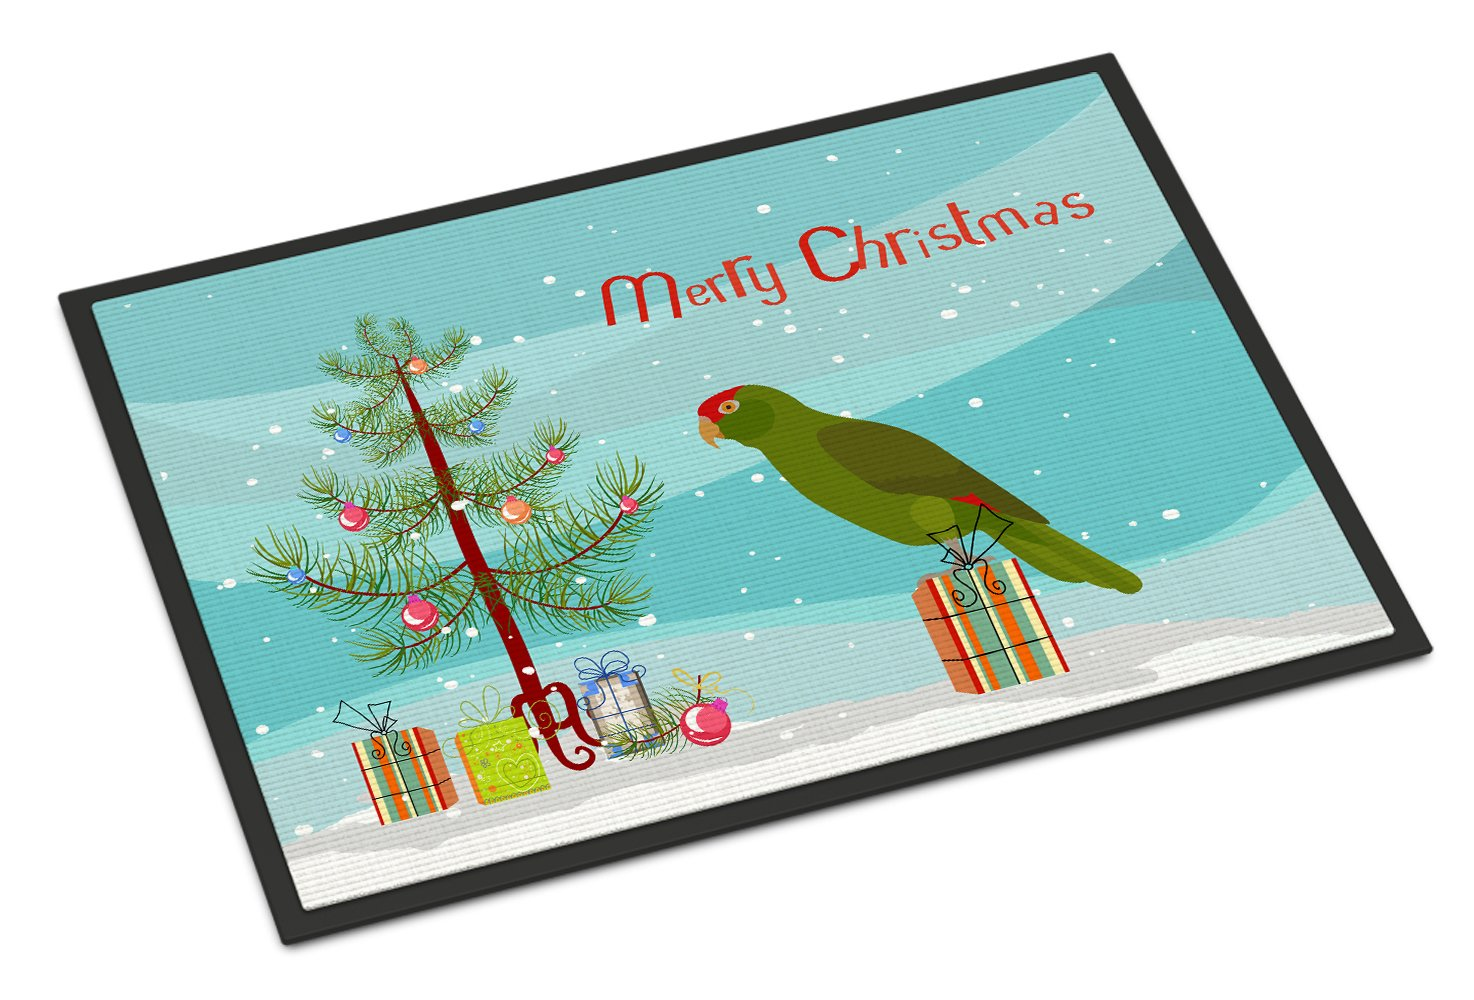 Amazon Parrot Merry Christmas Indoor or Outdoor Mat 24x36 CK4496JMAT by Caroline's Treasures